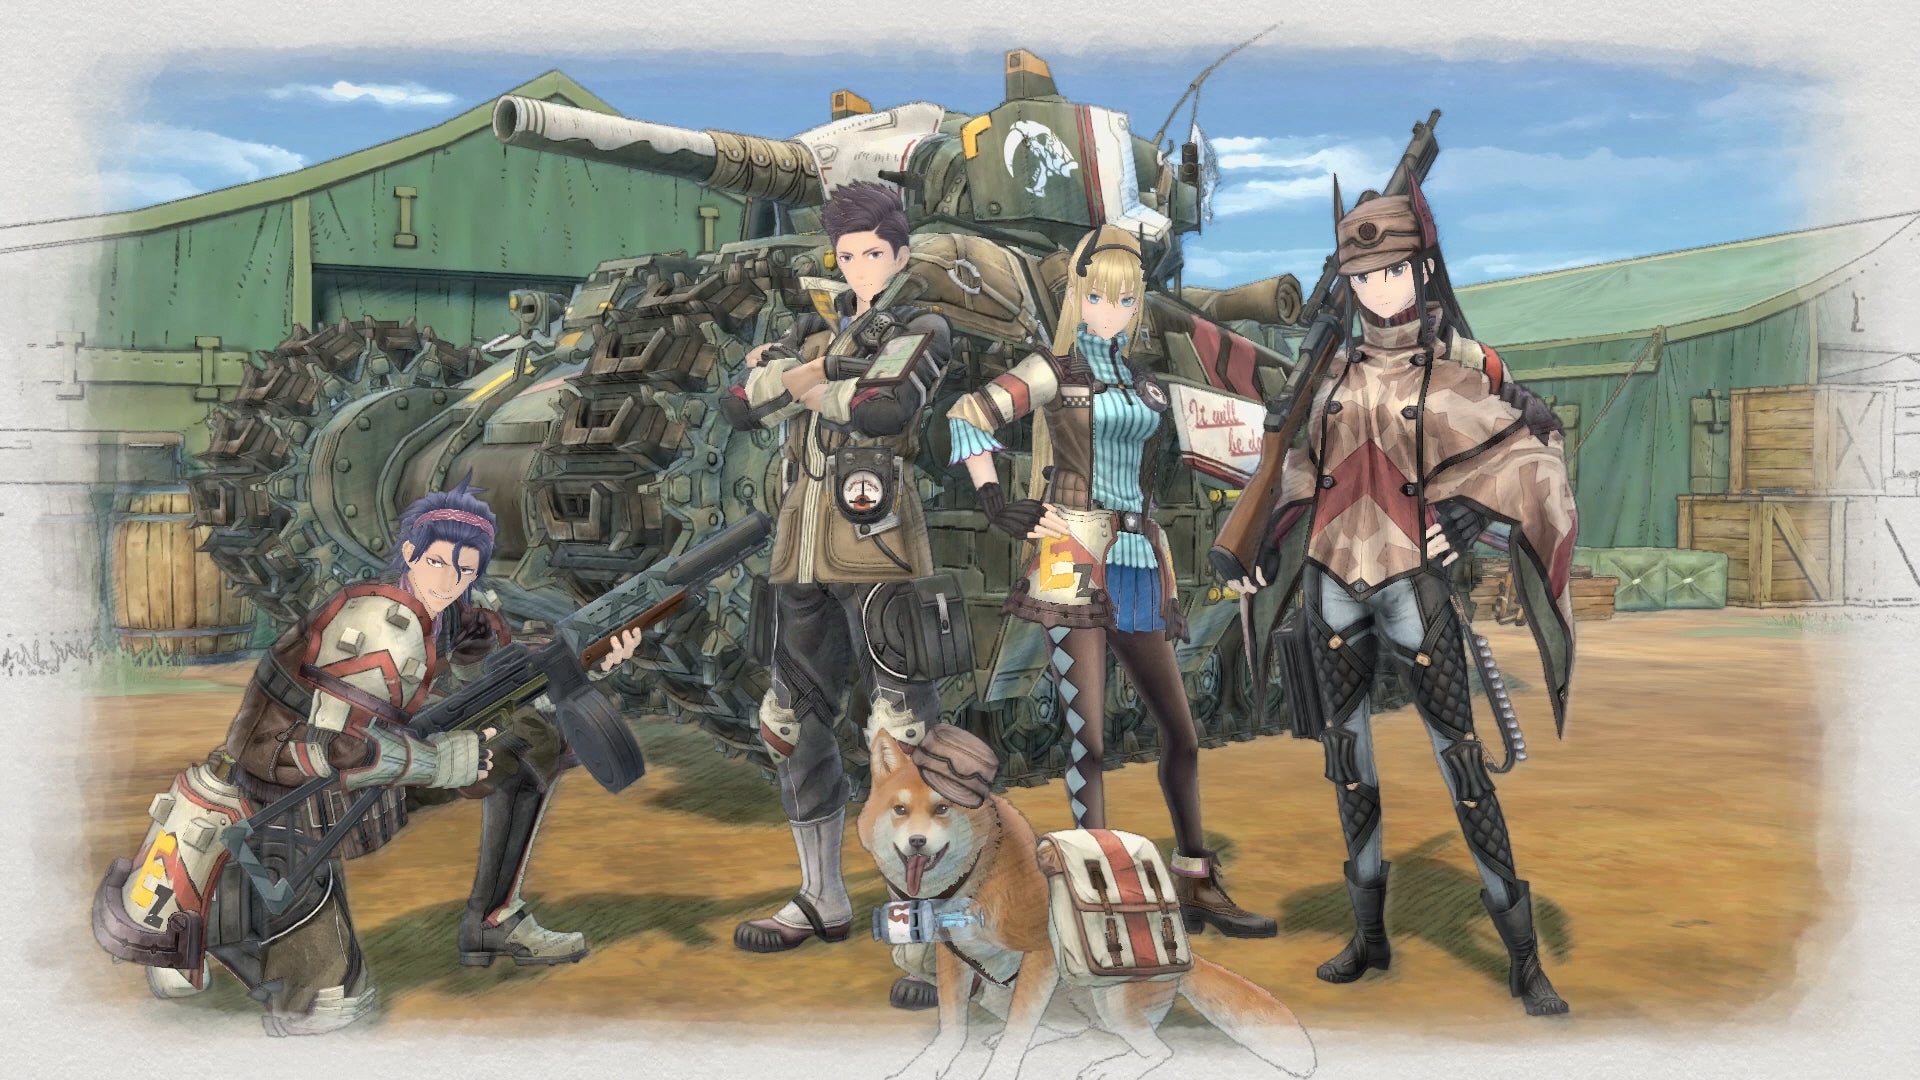 Valkyria Chronicles 4 announced for 2018, is coming to the Switch